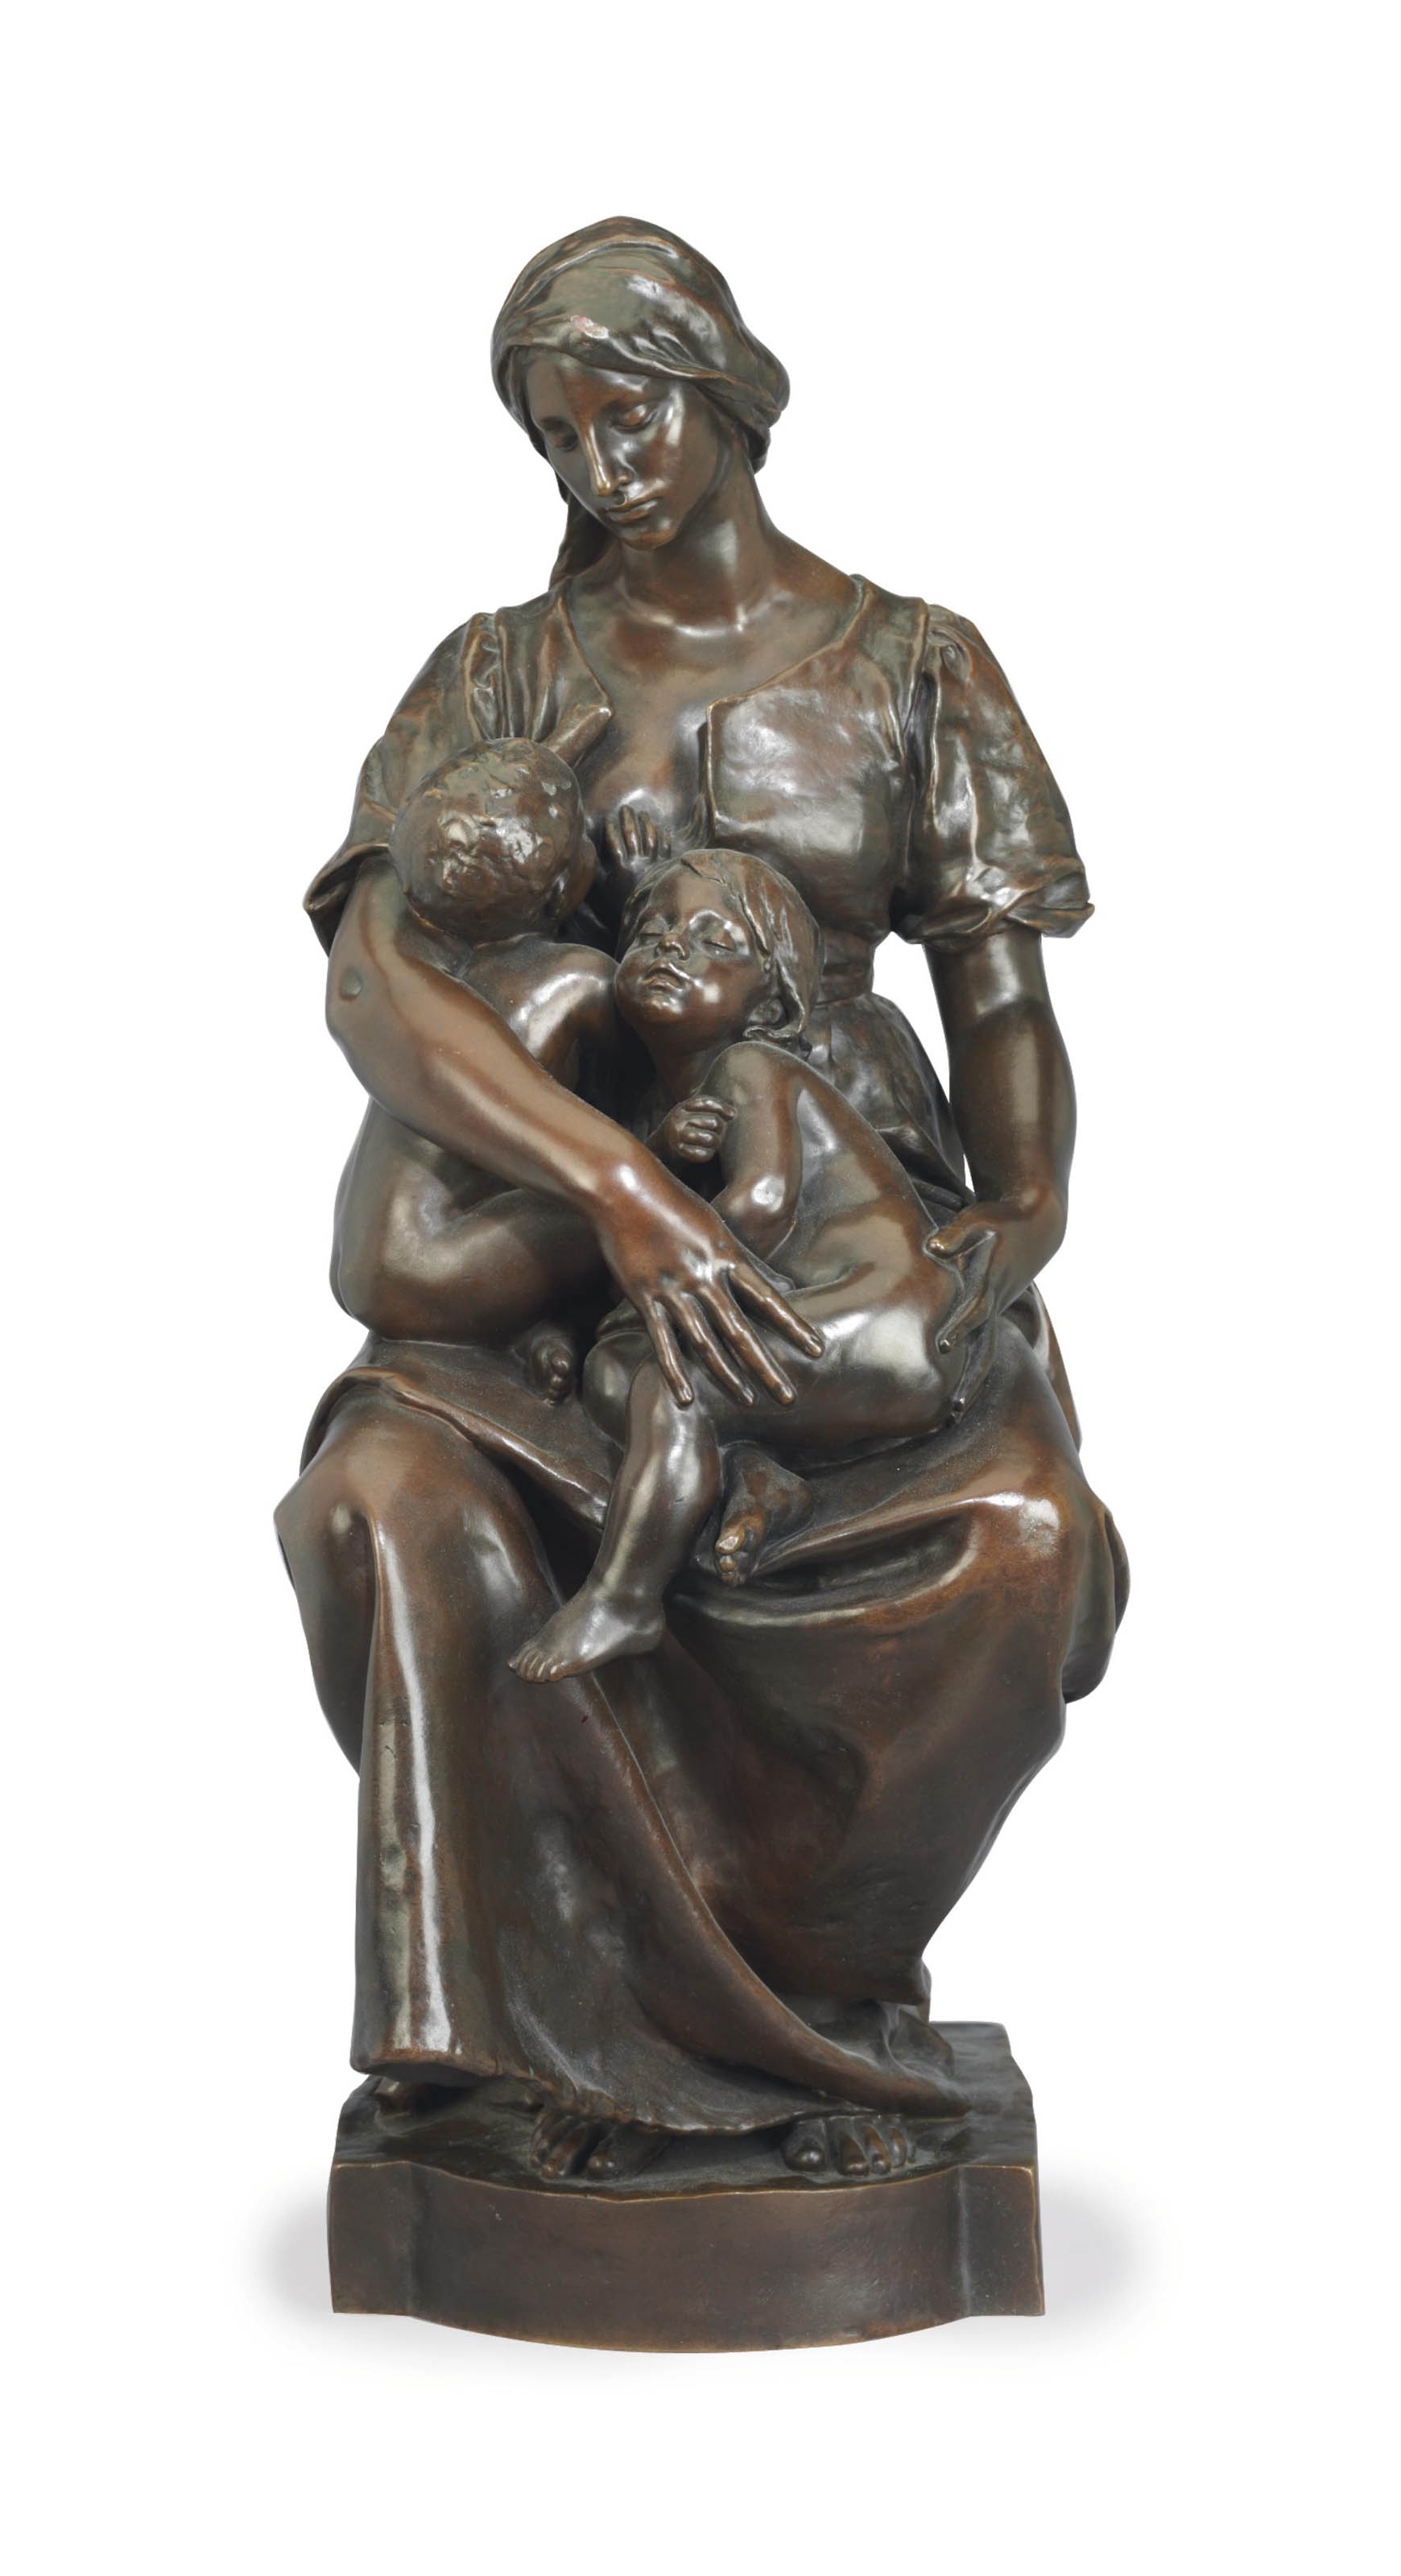 A FRENCH PATINATED-BRONZE FIGURAL GROUP ENTITLED 'CHARITE',